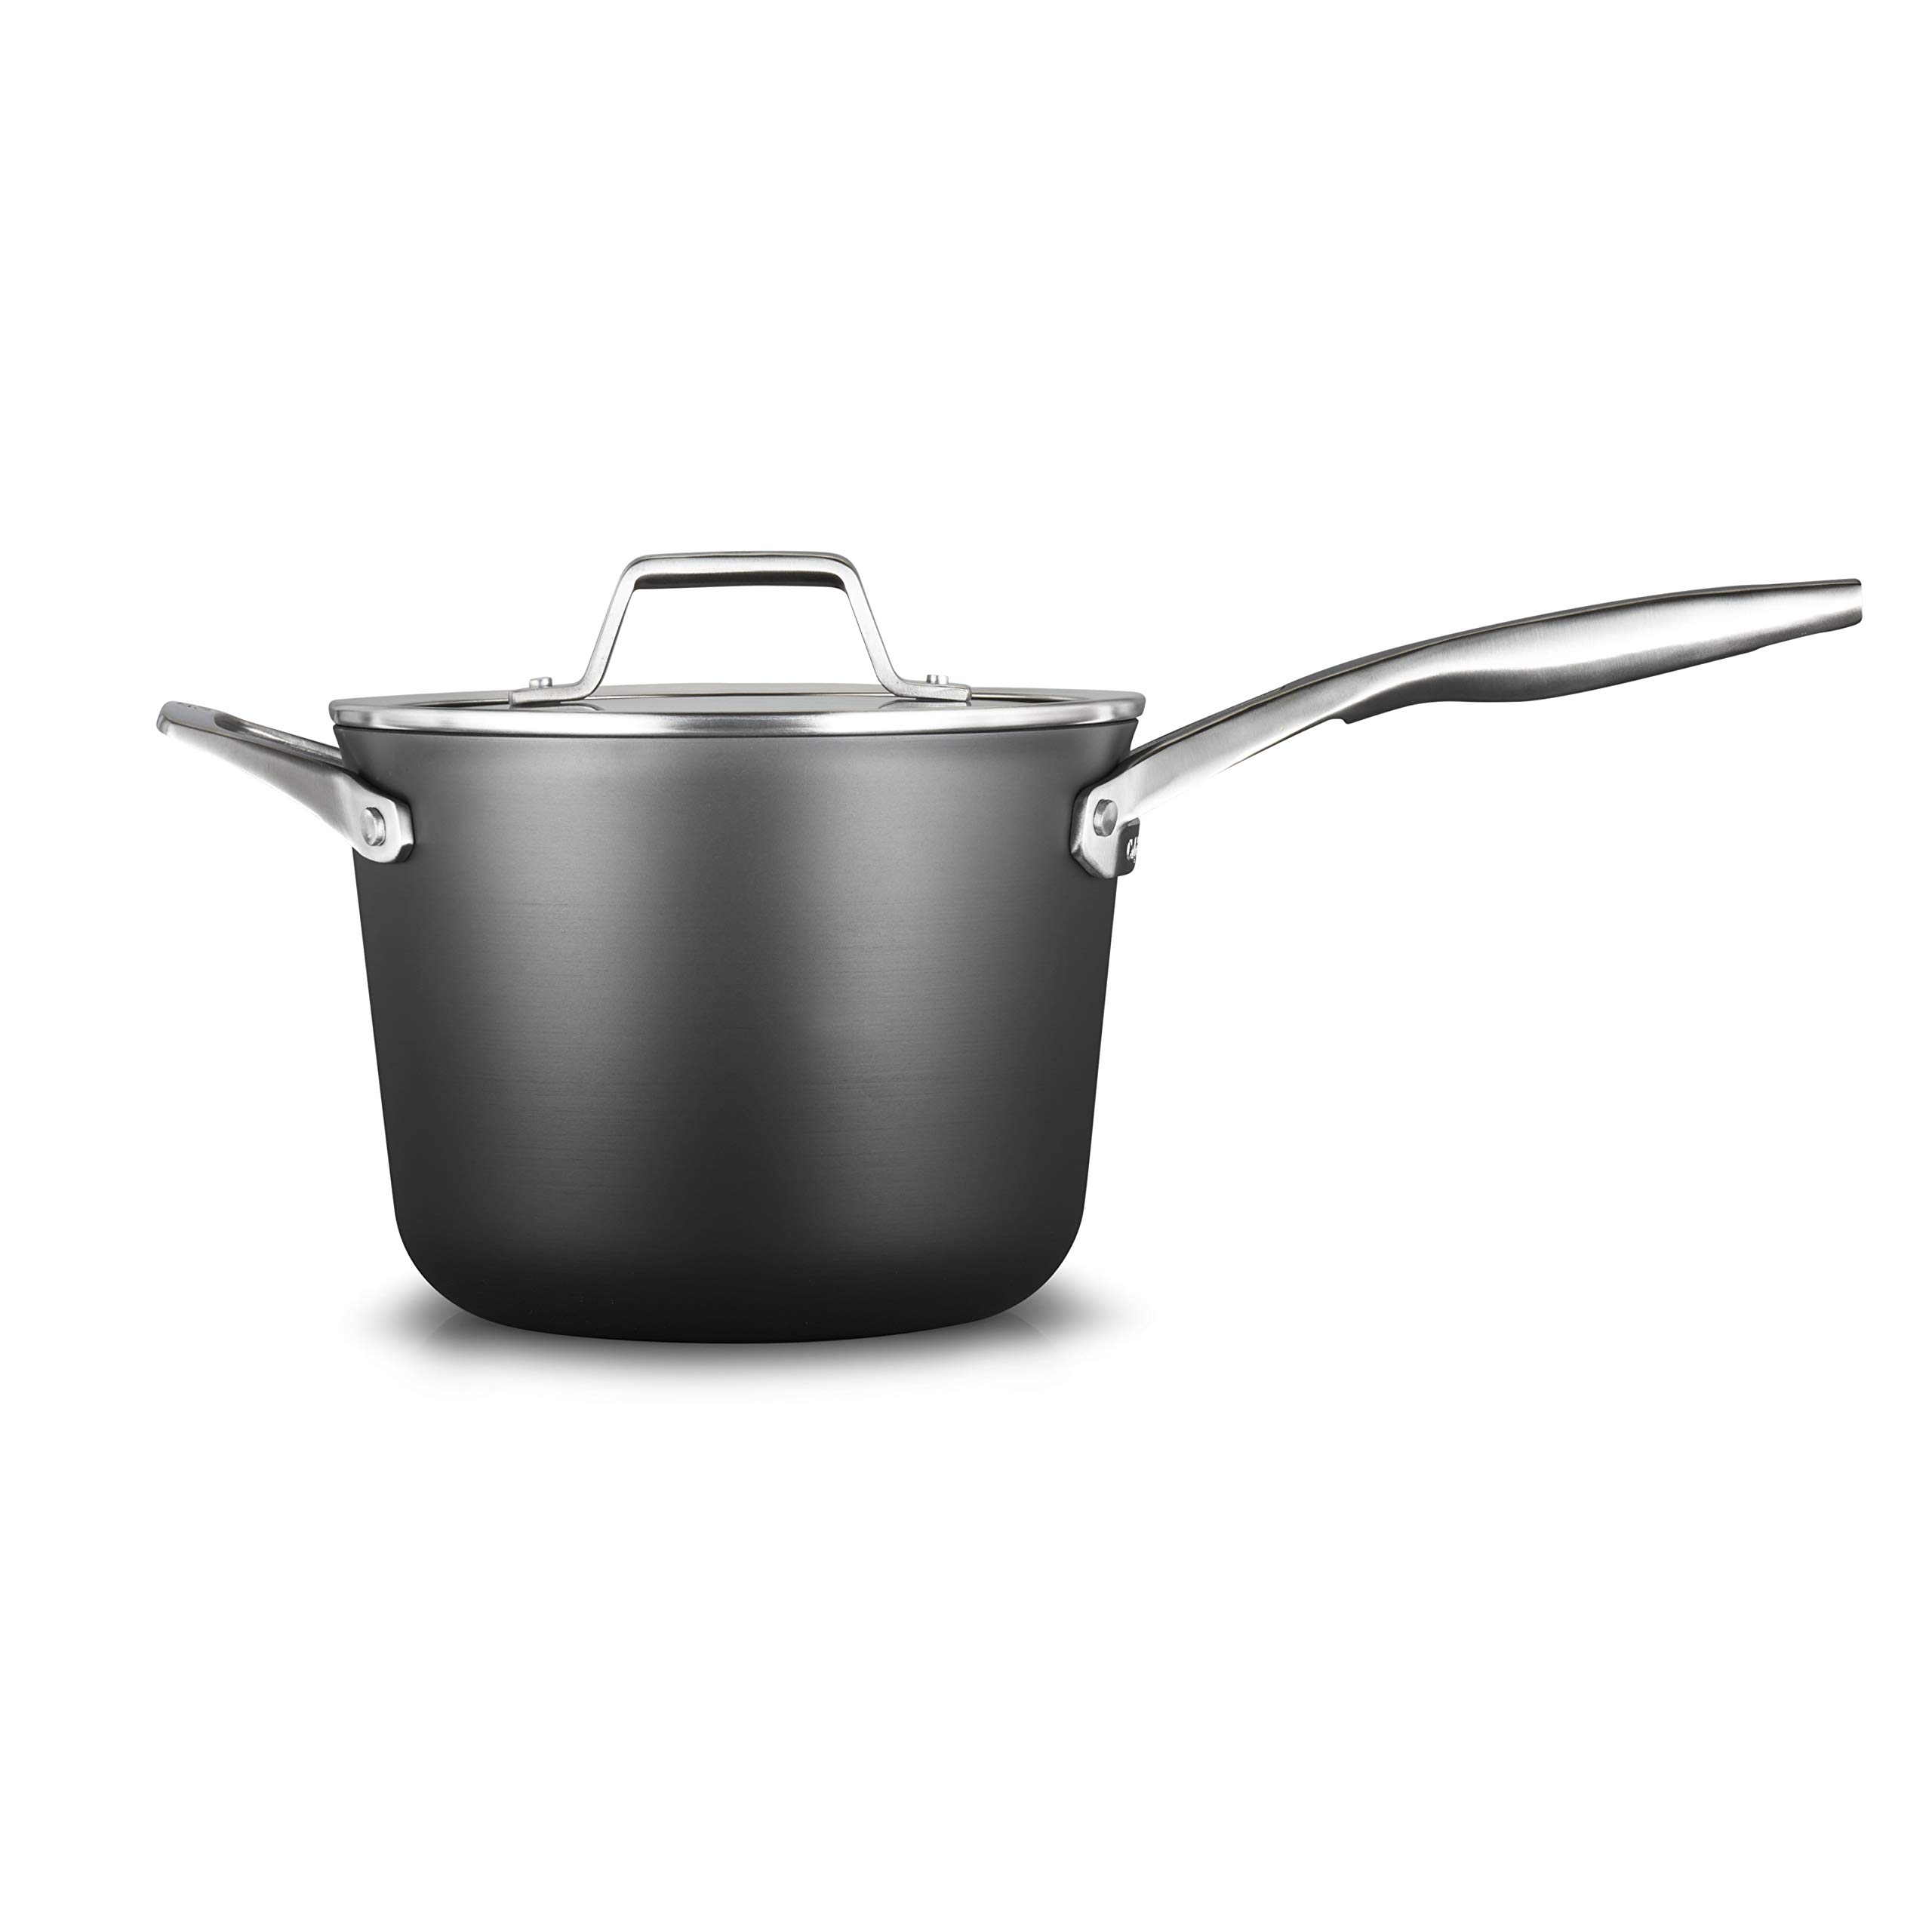 Calphalon 2029648 Premier Hard-Anodized Nonstick 4.5-Quart Saucepan with Cover, Black